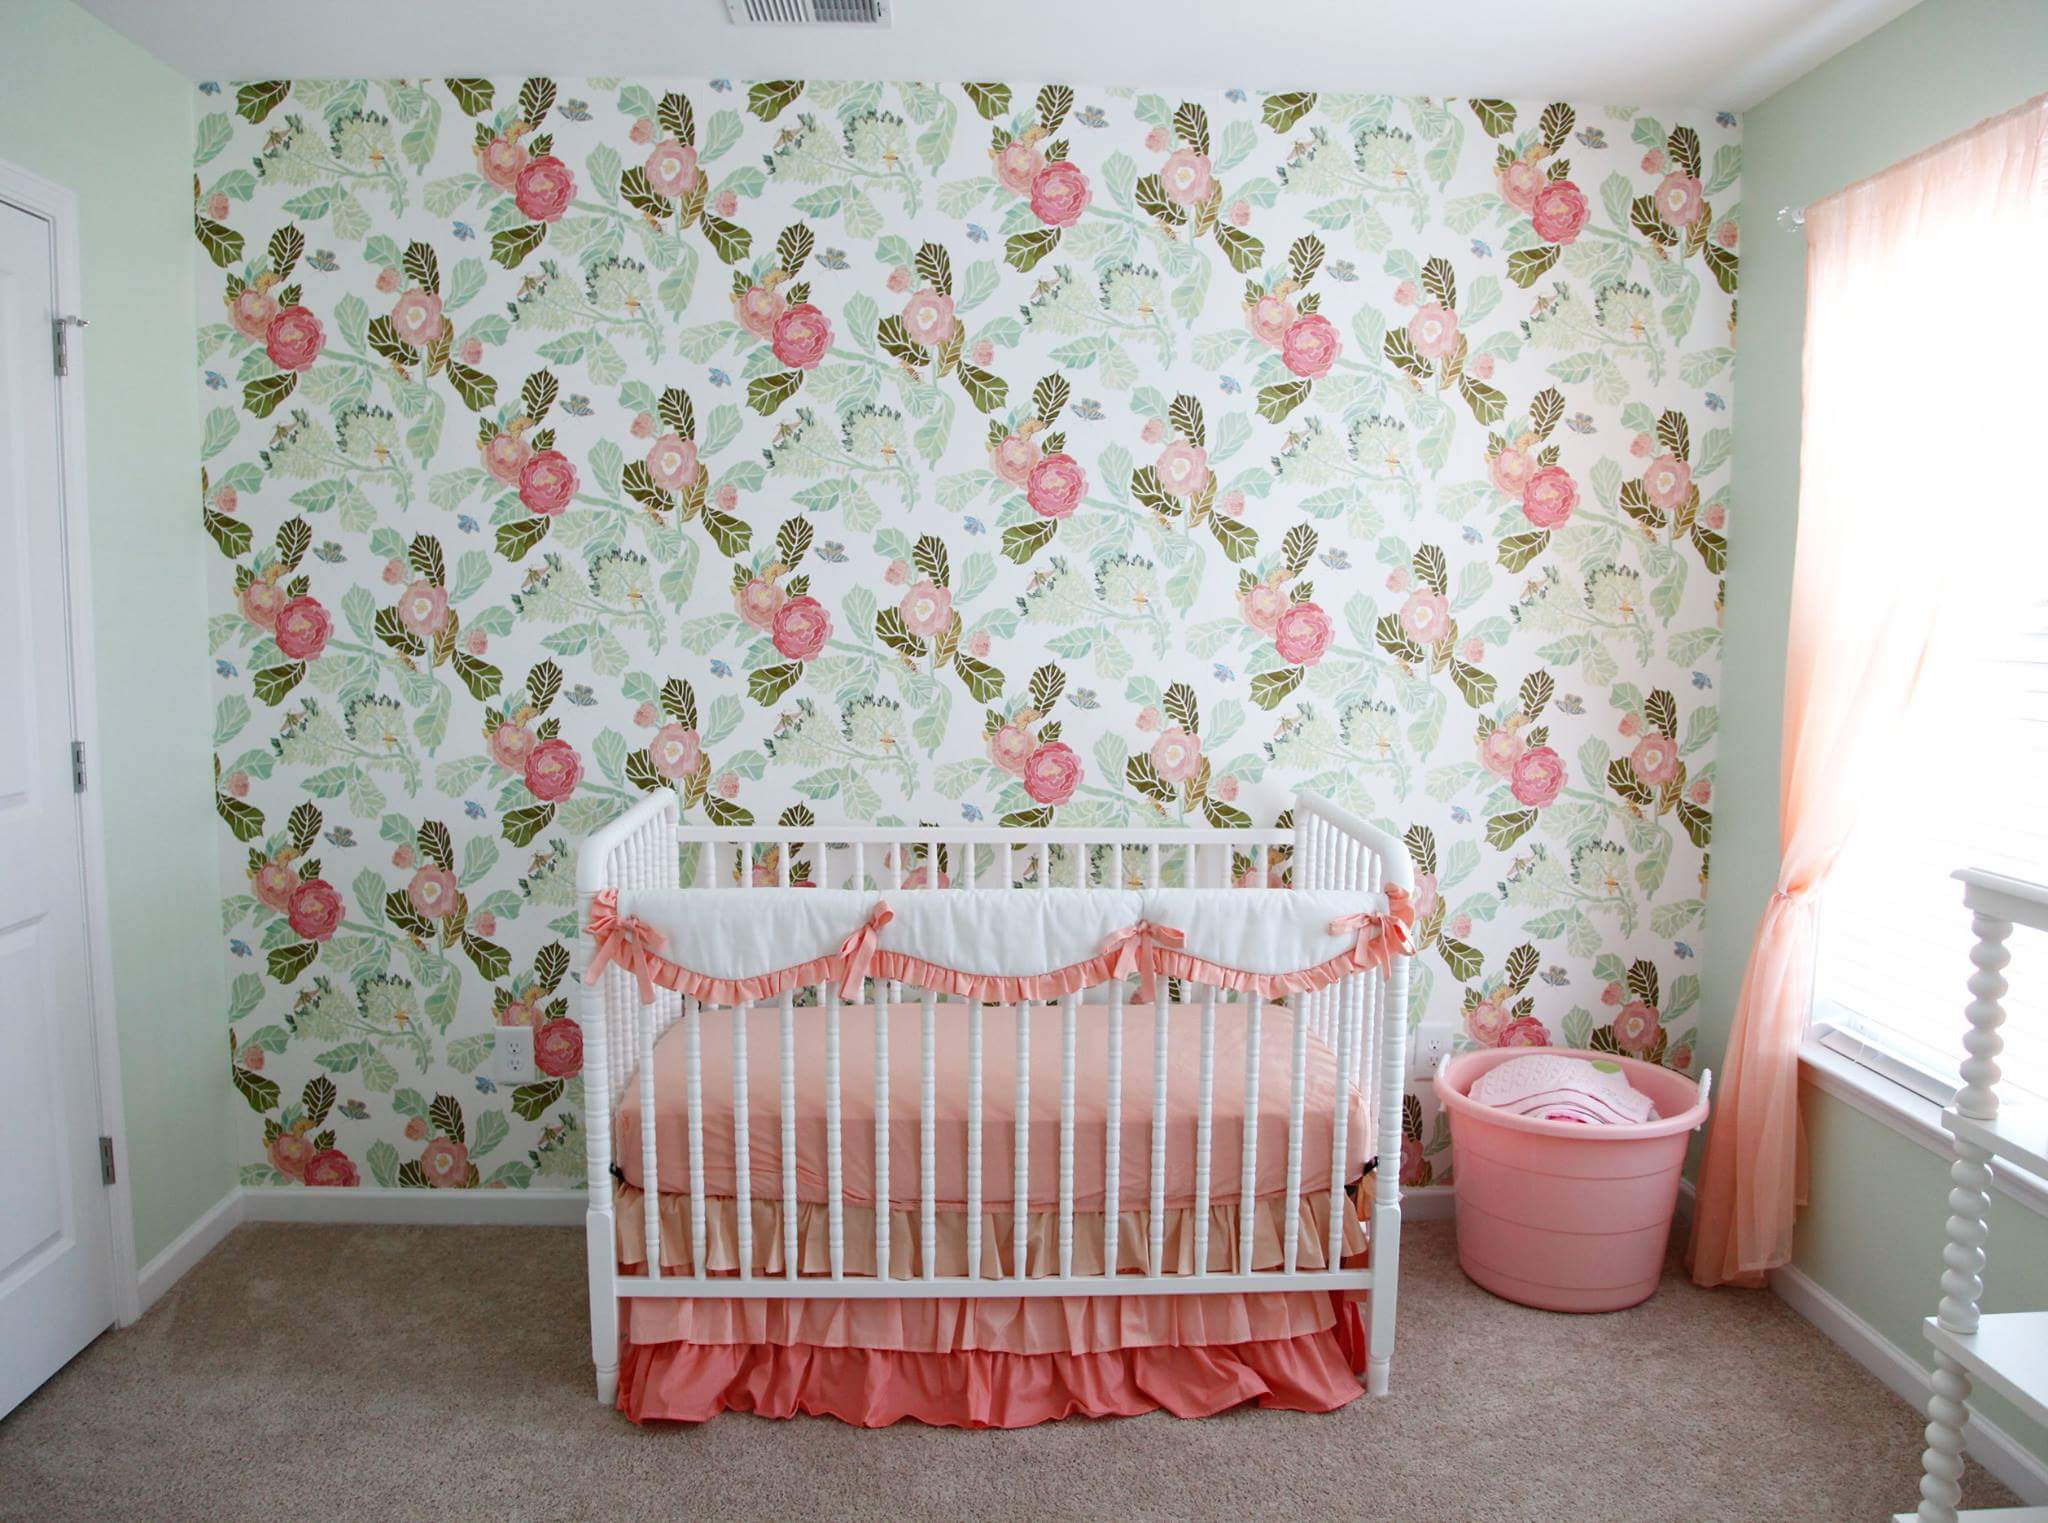 ... Hannahs Baby Room Sweet Nursery Ideas Girls Coral Baby Bedding Floral  Wallpaper Jenny Lind White Crib